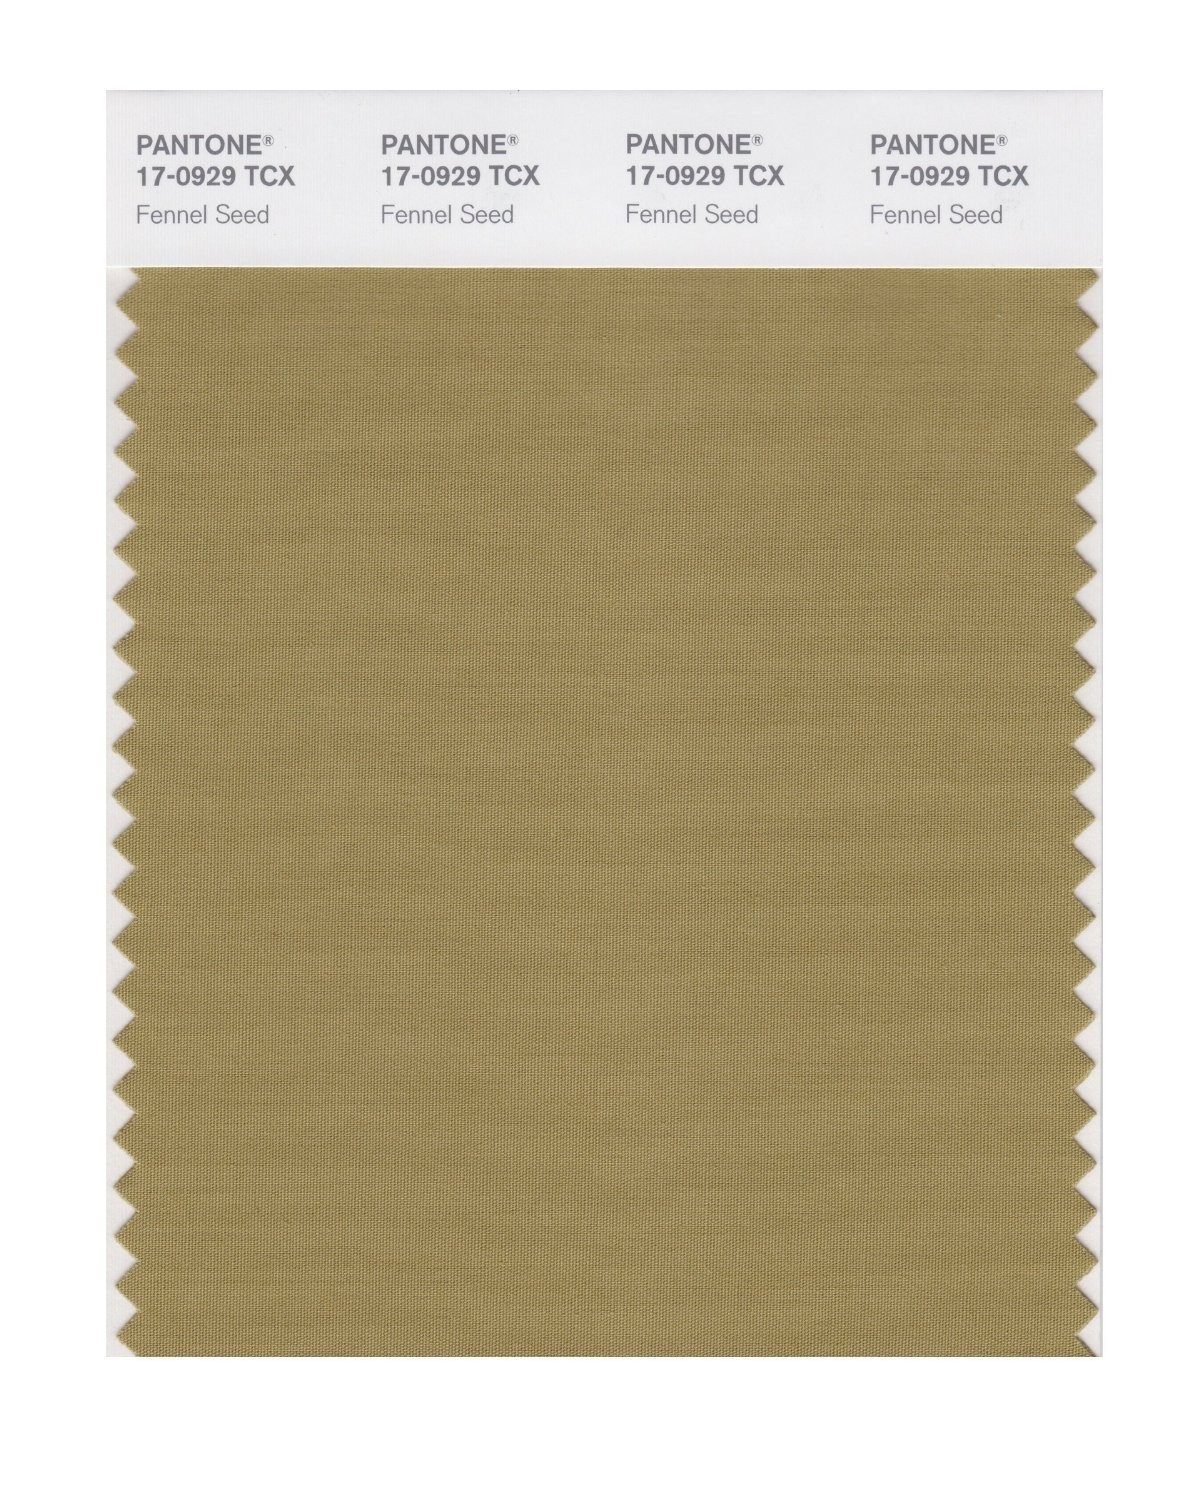 Pantone 17-0929 TCX Swatch Card Fennel Seed